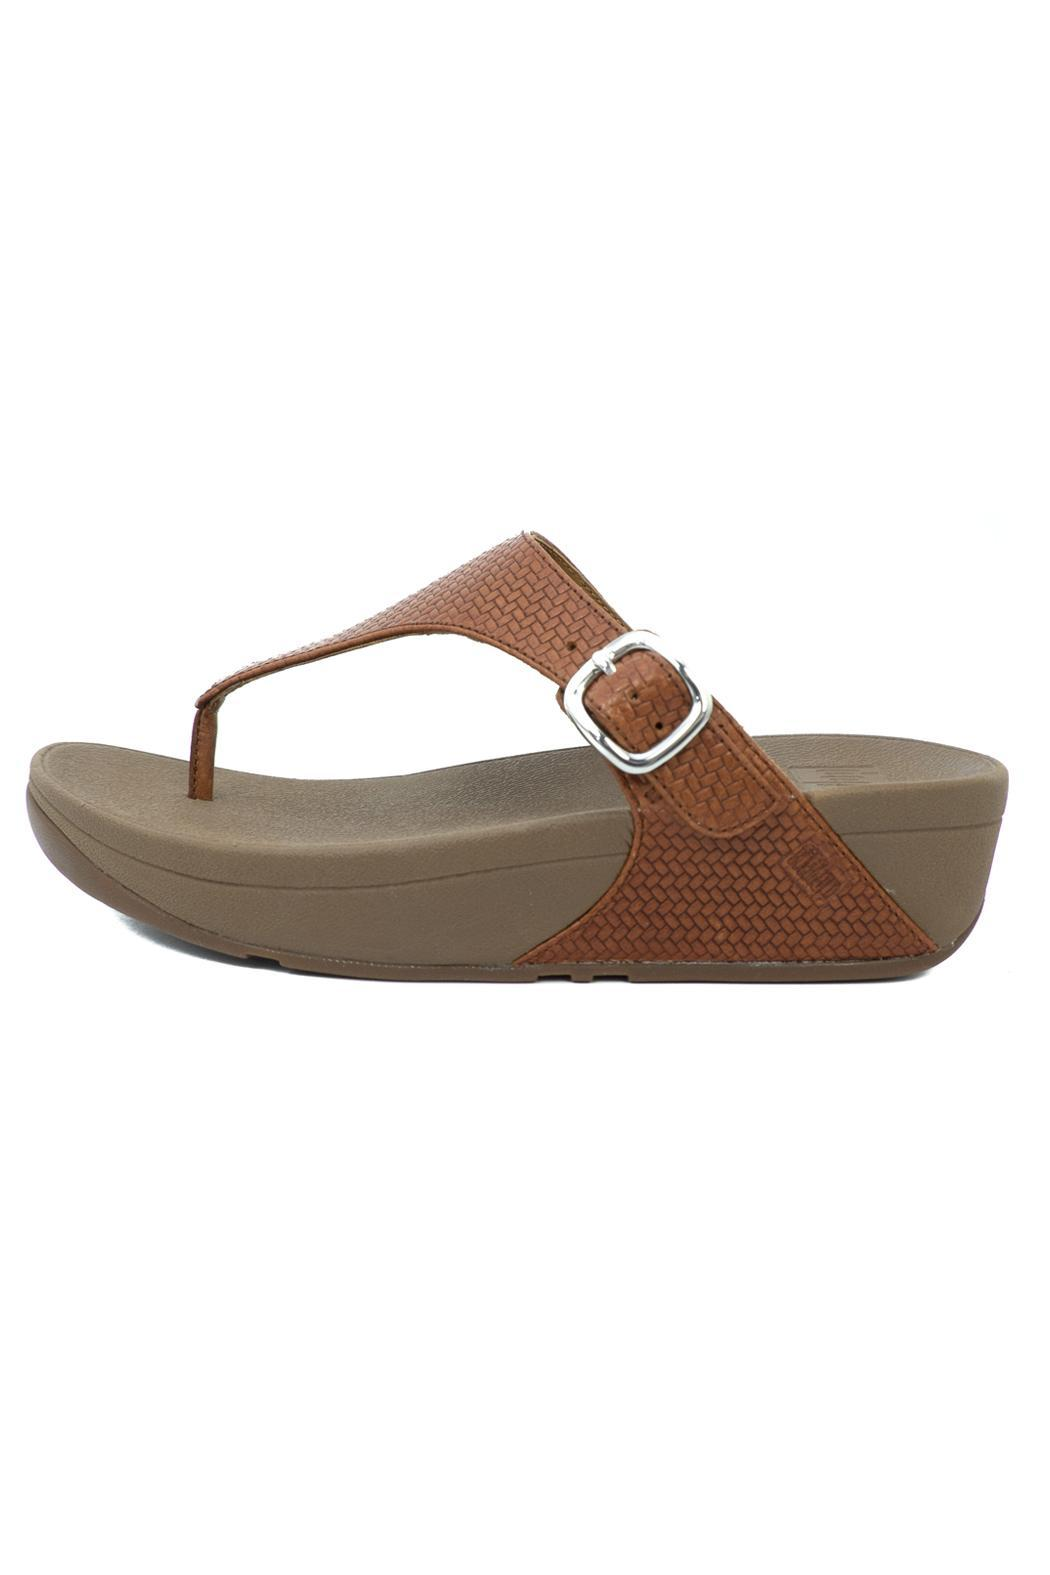 d755bf4fffbc Fitflop The Skinny Tan Sandal from Canada by Starlet — Shoptiques